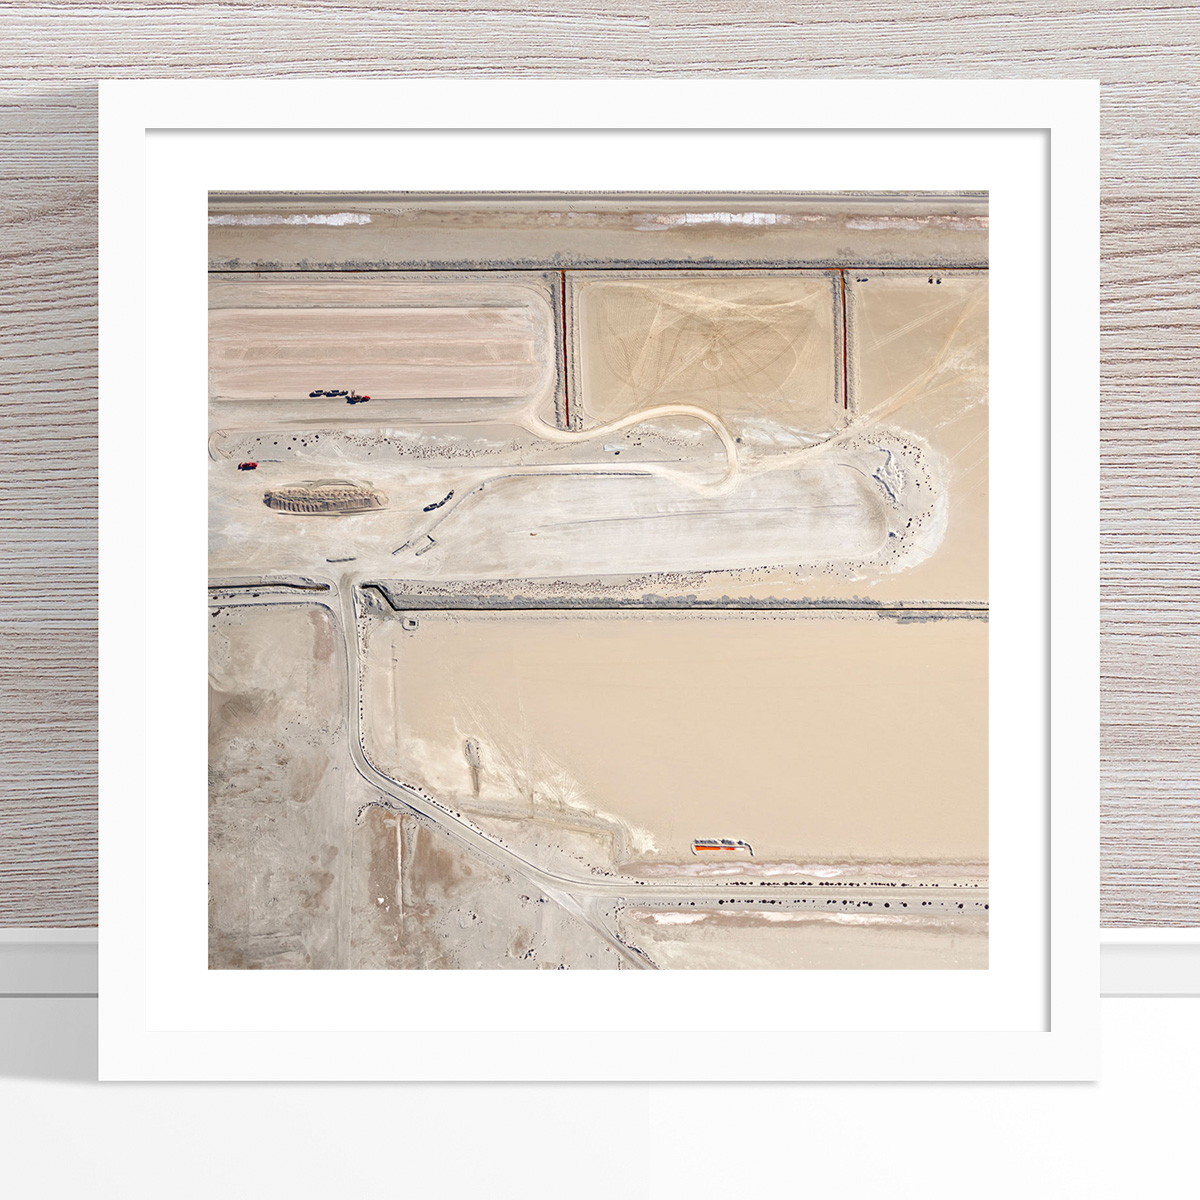 Chris Saunders - 'Aerial Salt 008' White Frame